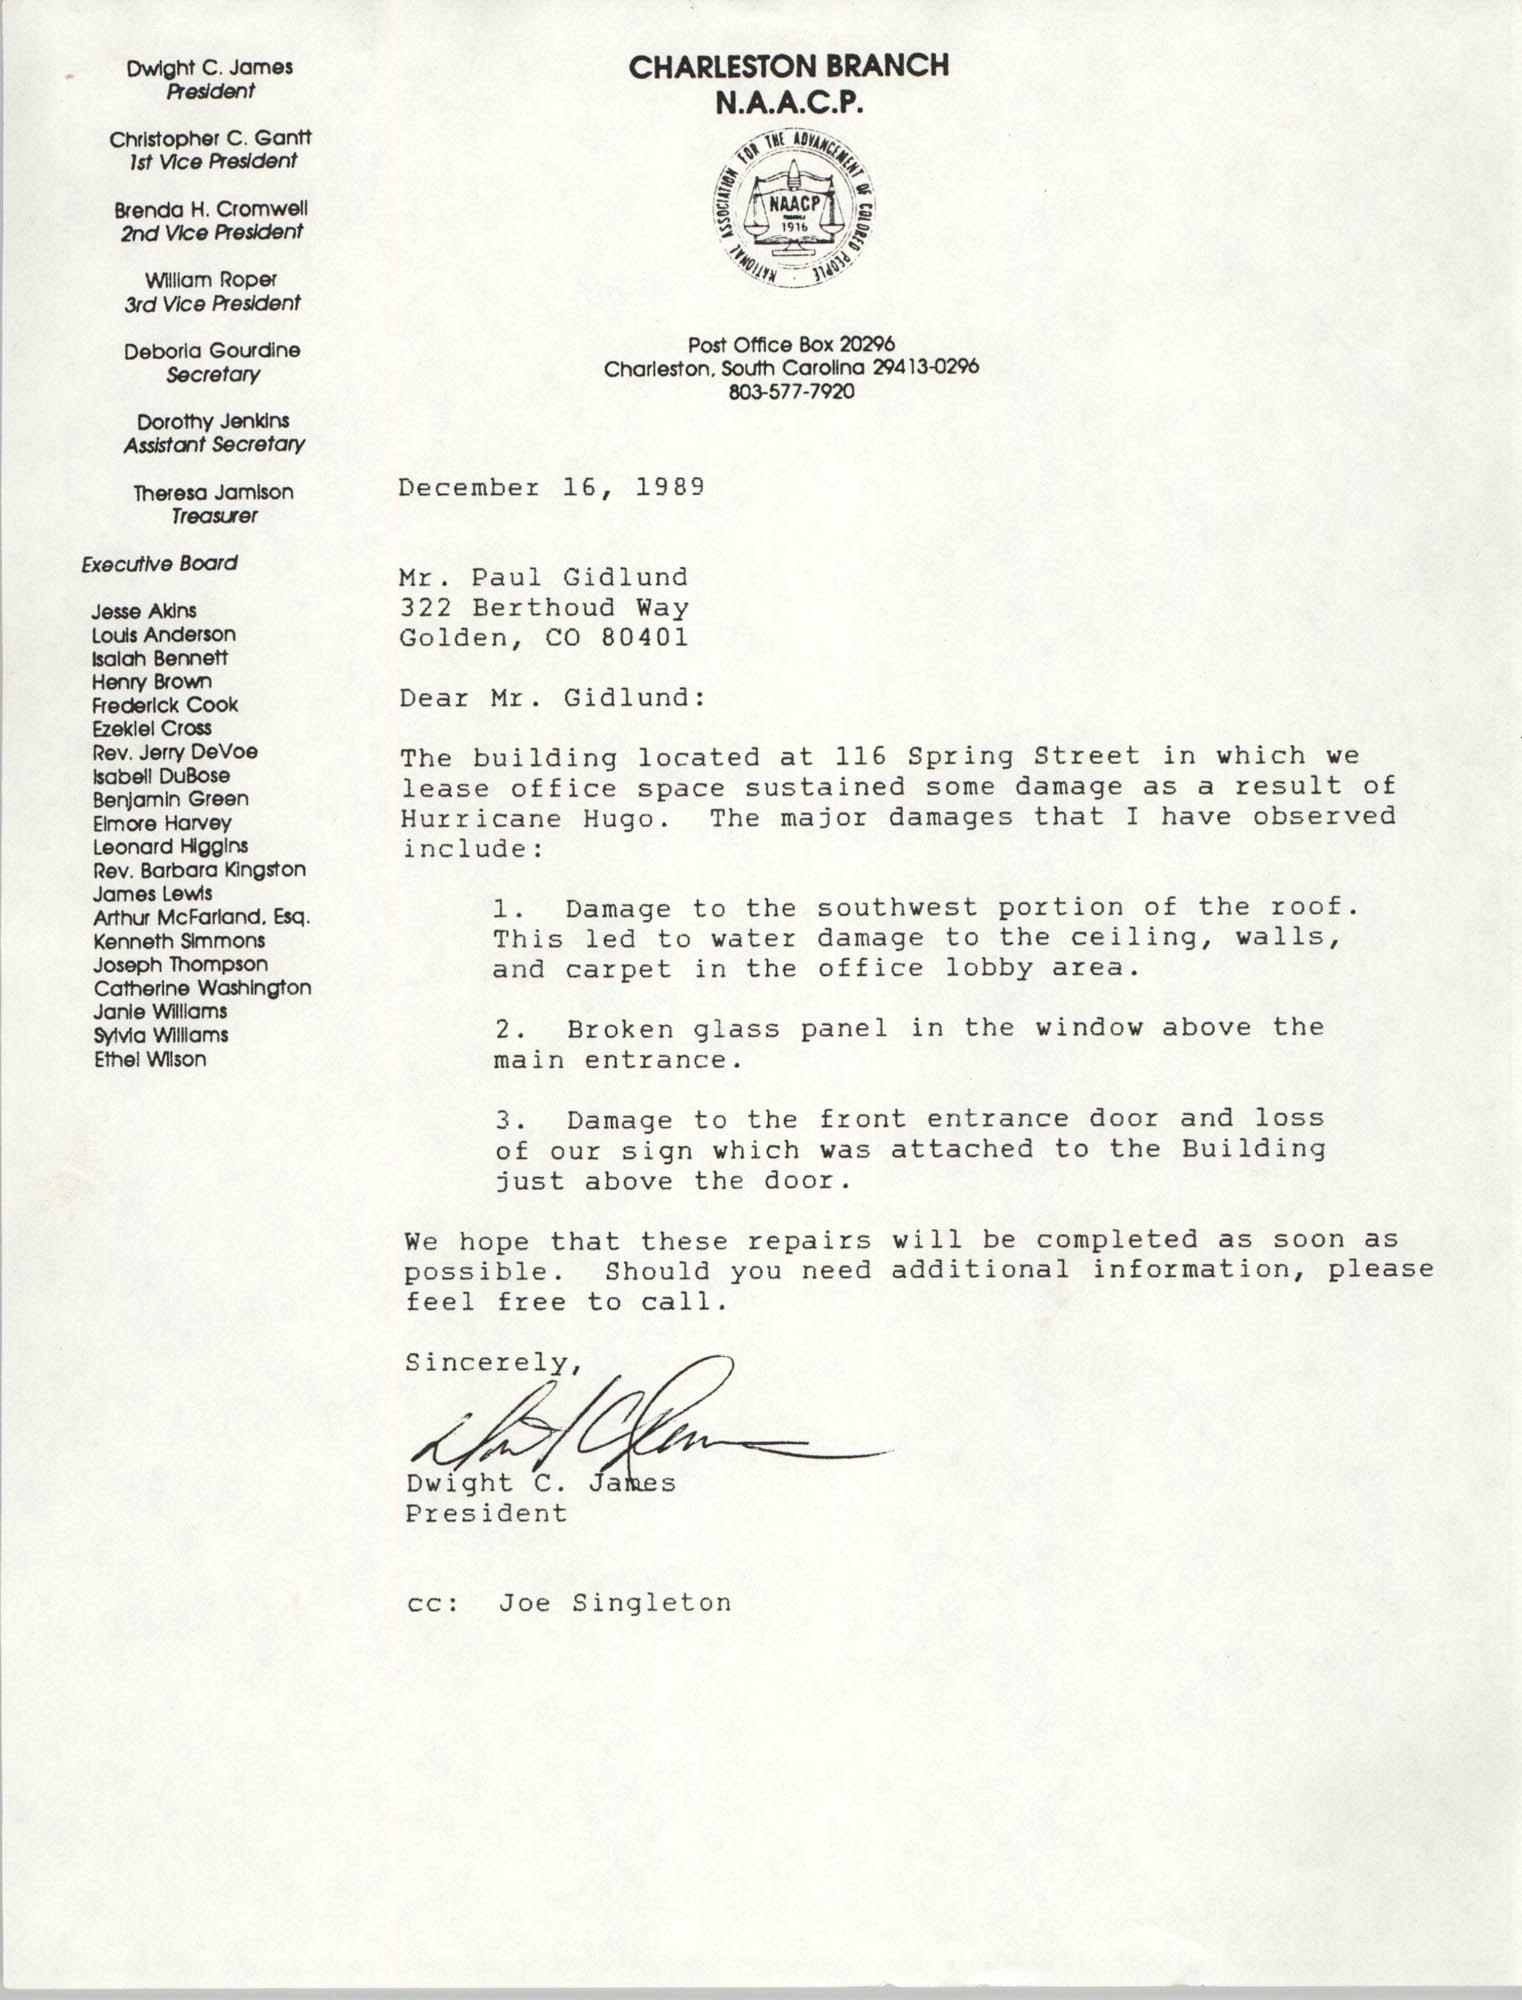 Letter from Dwight C. James to Paul Gidlund, December 16, 1989